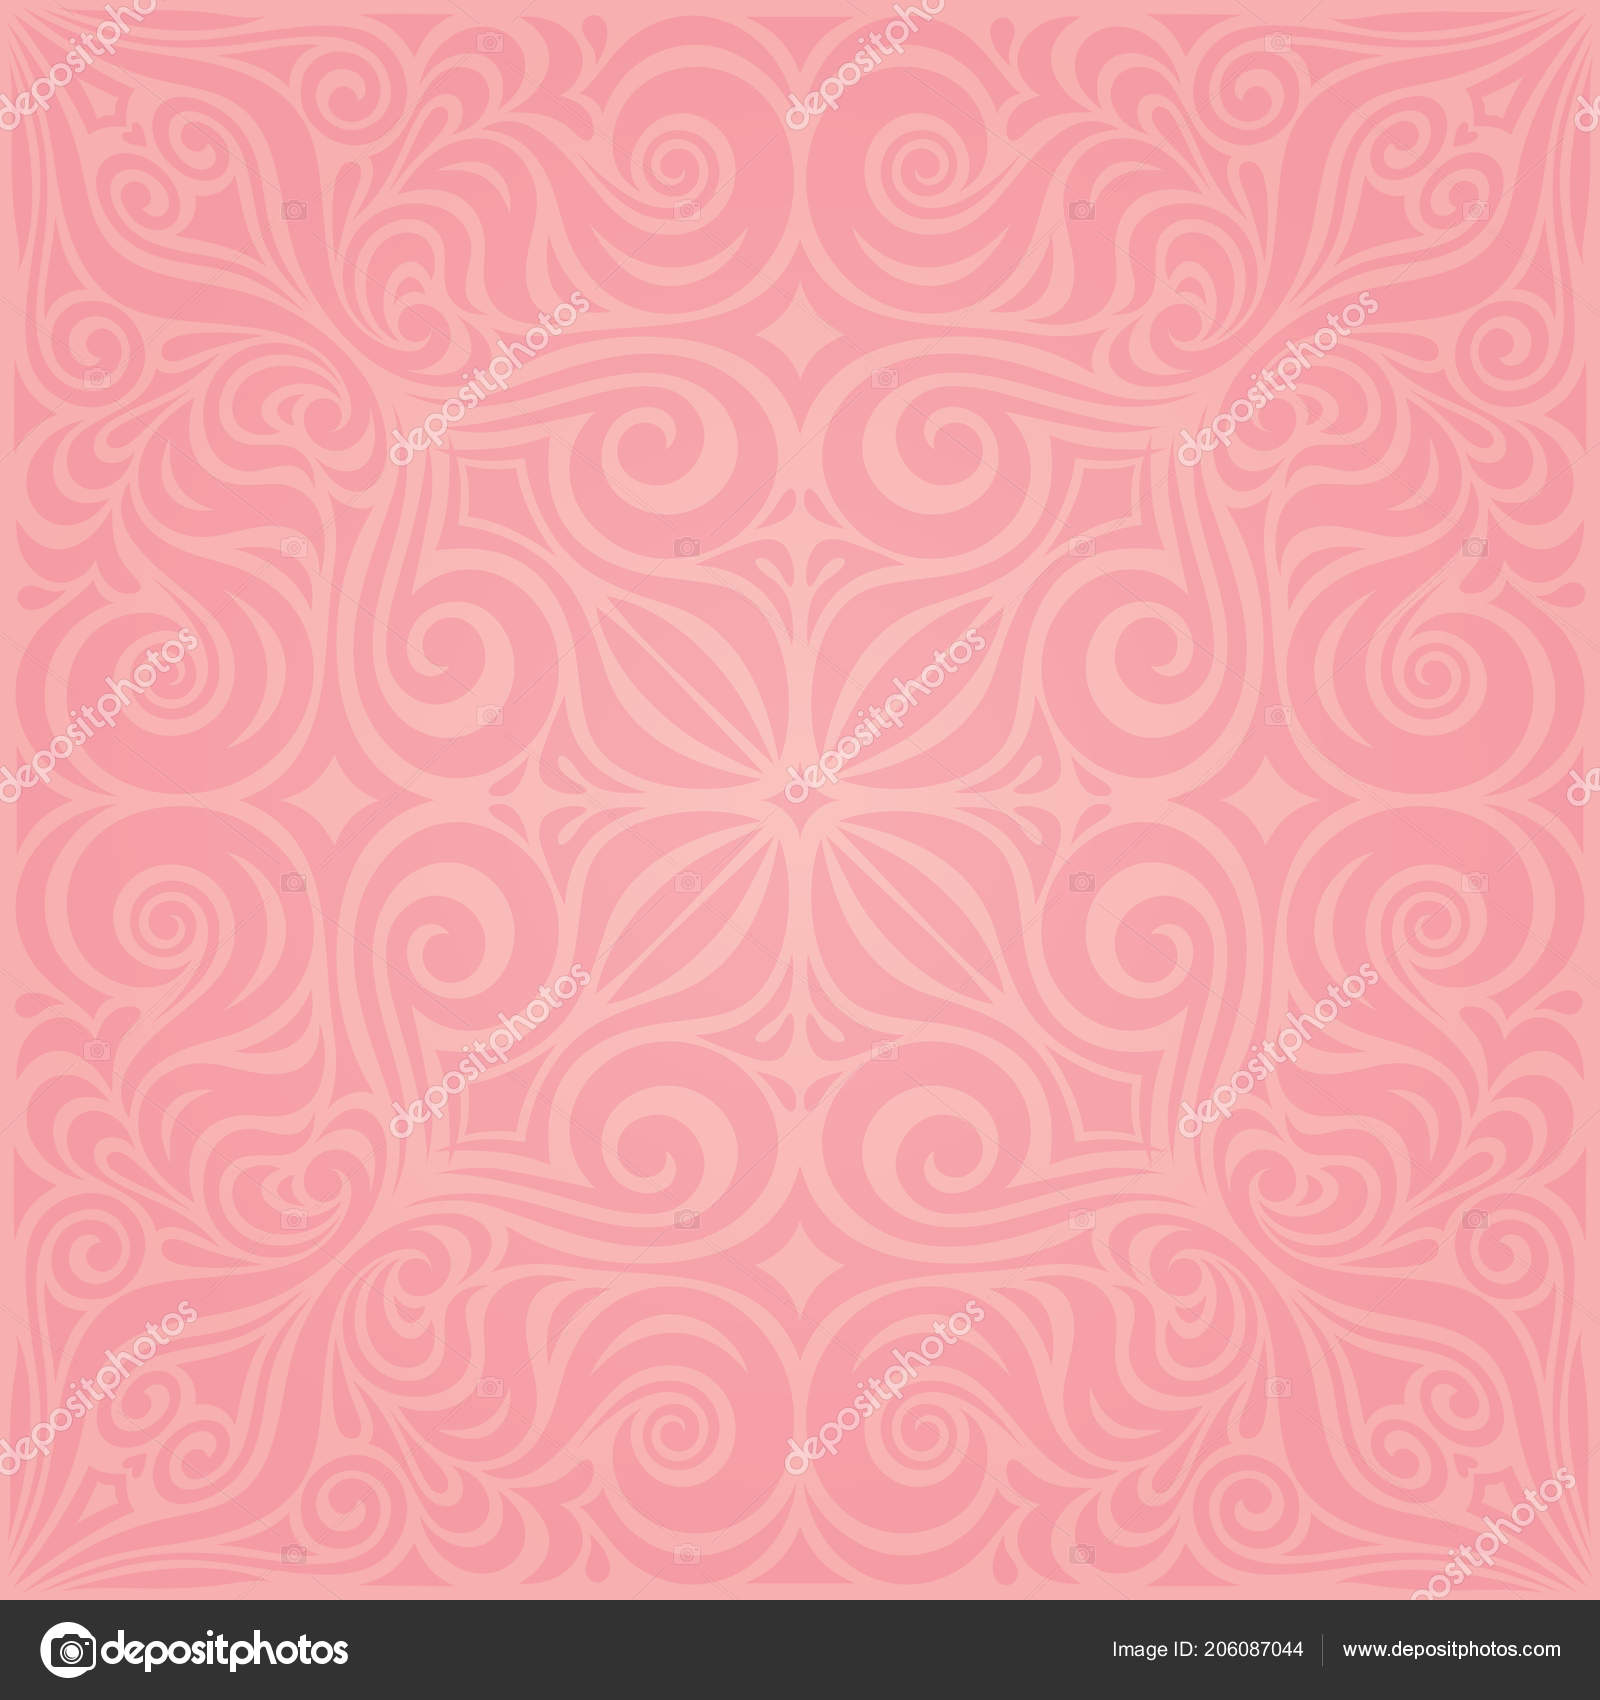 Floral Pink Vector Wallpaper Trendy Fashion Mandala Design Wedding Decorative Stock